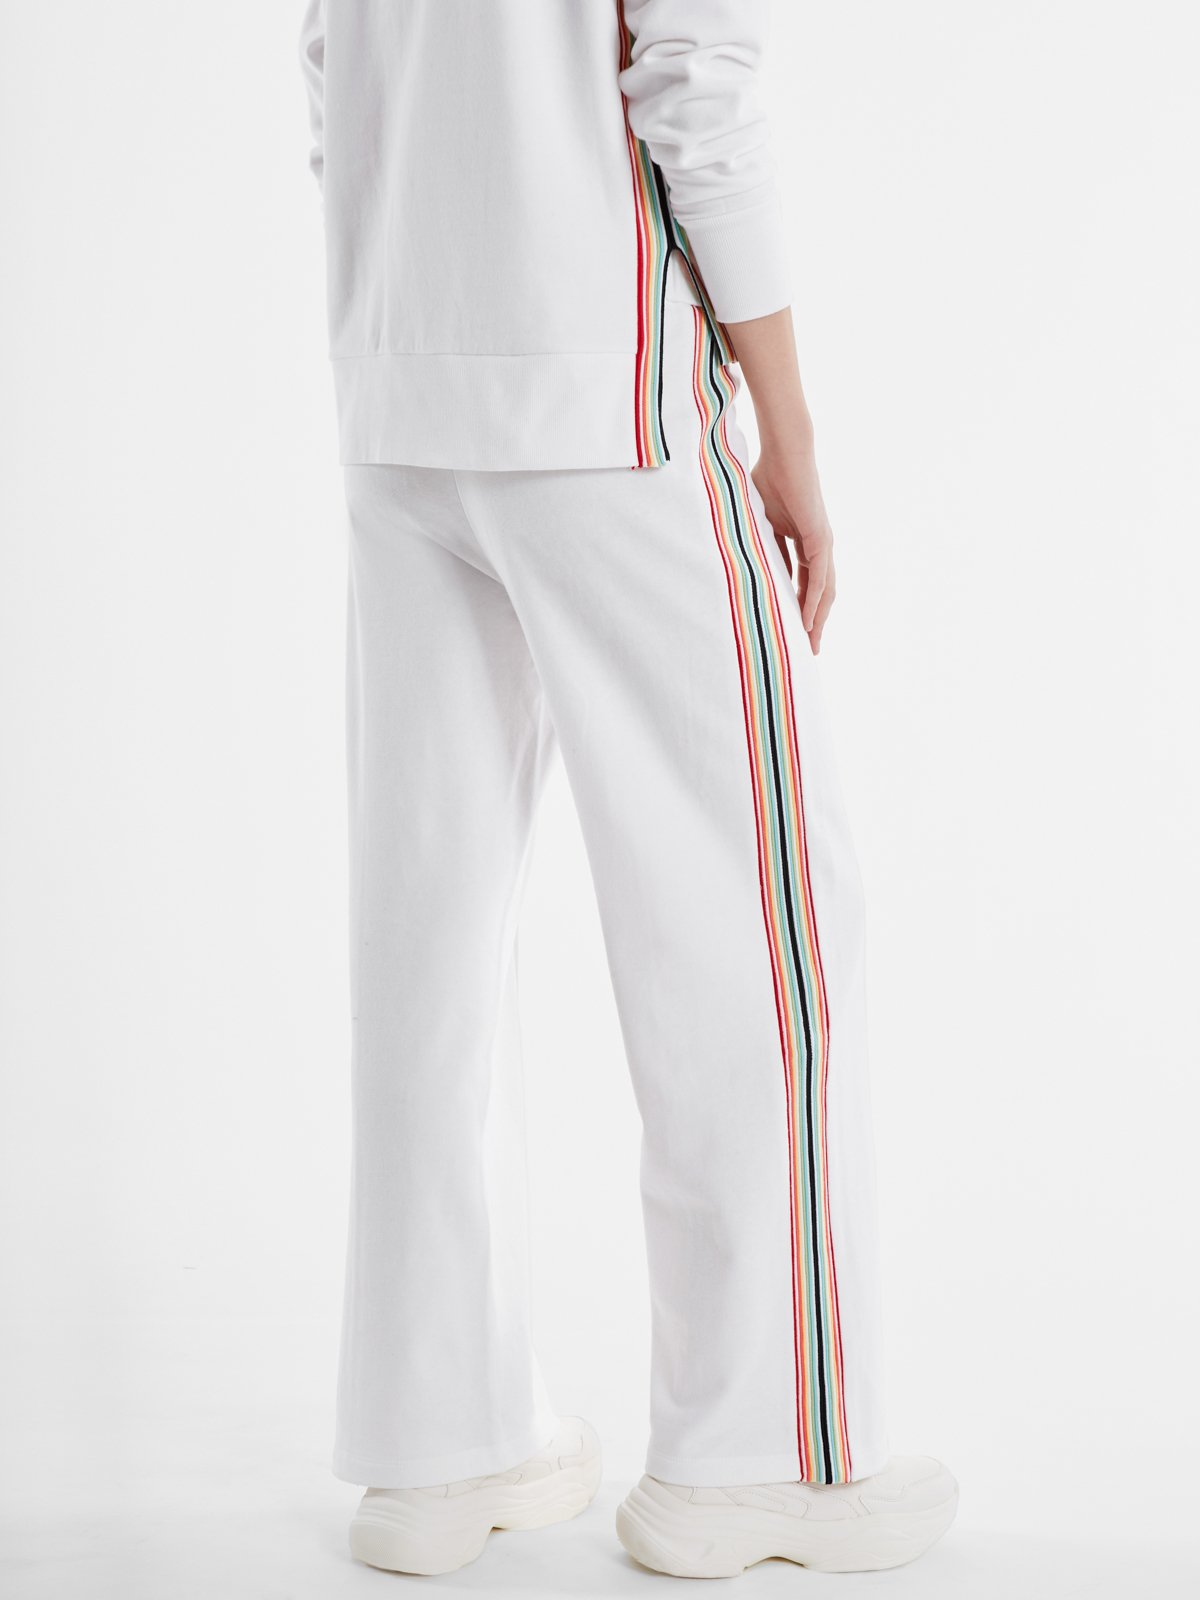 525 America French Terry Rainbow Stripe Pants- Navy